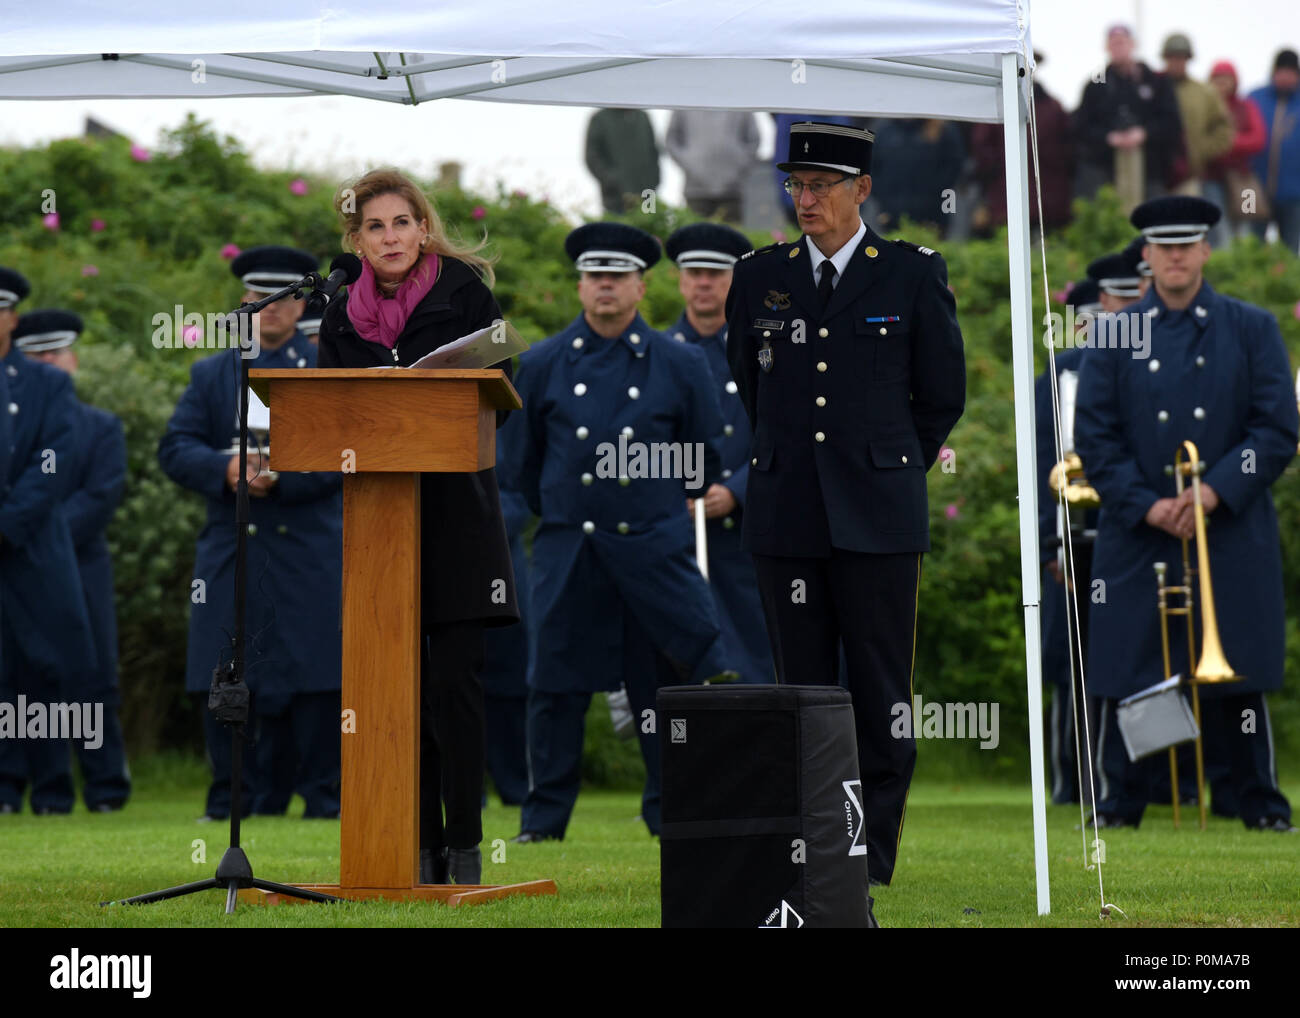 SAINTE-MARIE-DU-MONT, France (June 6, 2018) U.S. Ambassador to France Jamie McCourt speaks during the Utah Beach Federal Monument Ceremony. This year marks the 74th anniversary of Operation Overlord, the Allied invasion of Normandy on June 6, 1944 -- most commonly known as D-Day. An epic multinational amphibious and airborne operation, D-Day forged partnerships and reinforced transatlantic bonds that remain strong today. Overall, U.S. service members from 20 units in Europe and the U.S. participated in events and ceremonies May 30-June 7, 2018, in almost 40 locations throughout the Normandy re Stock Photo